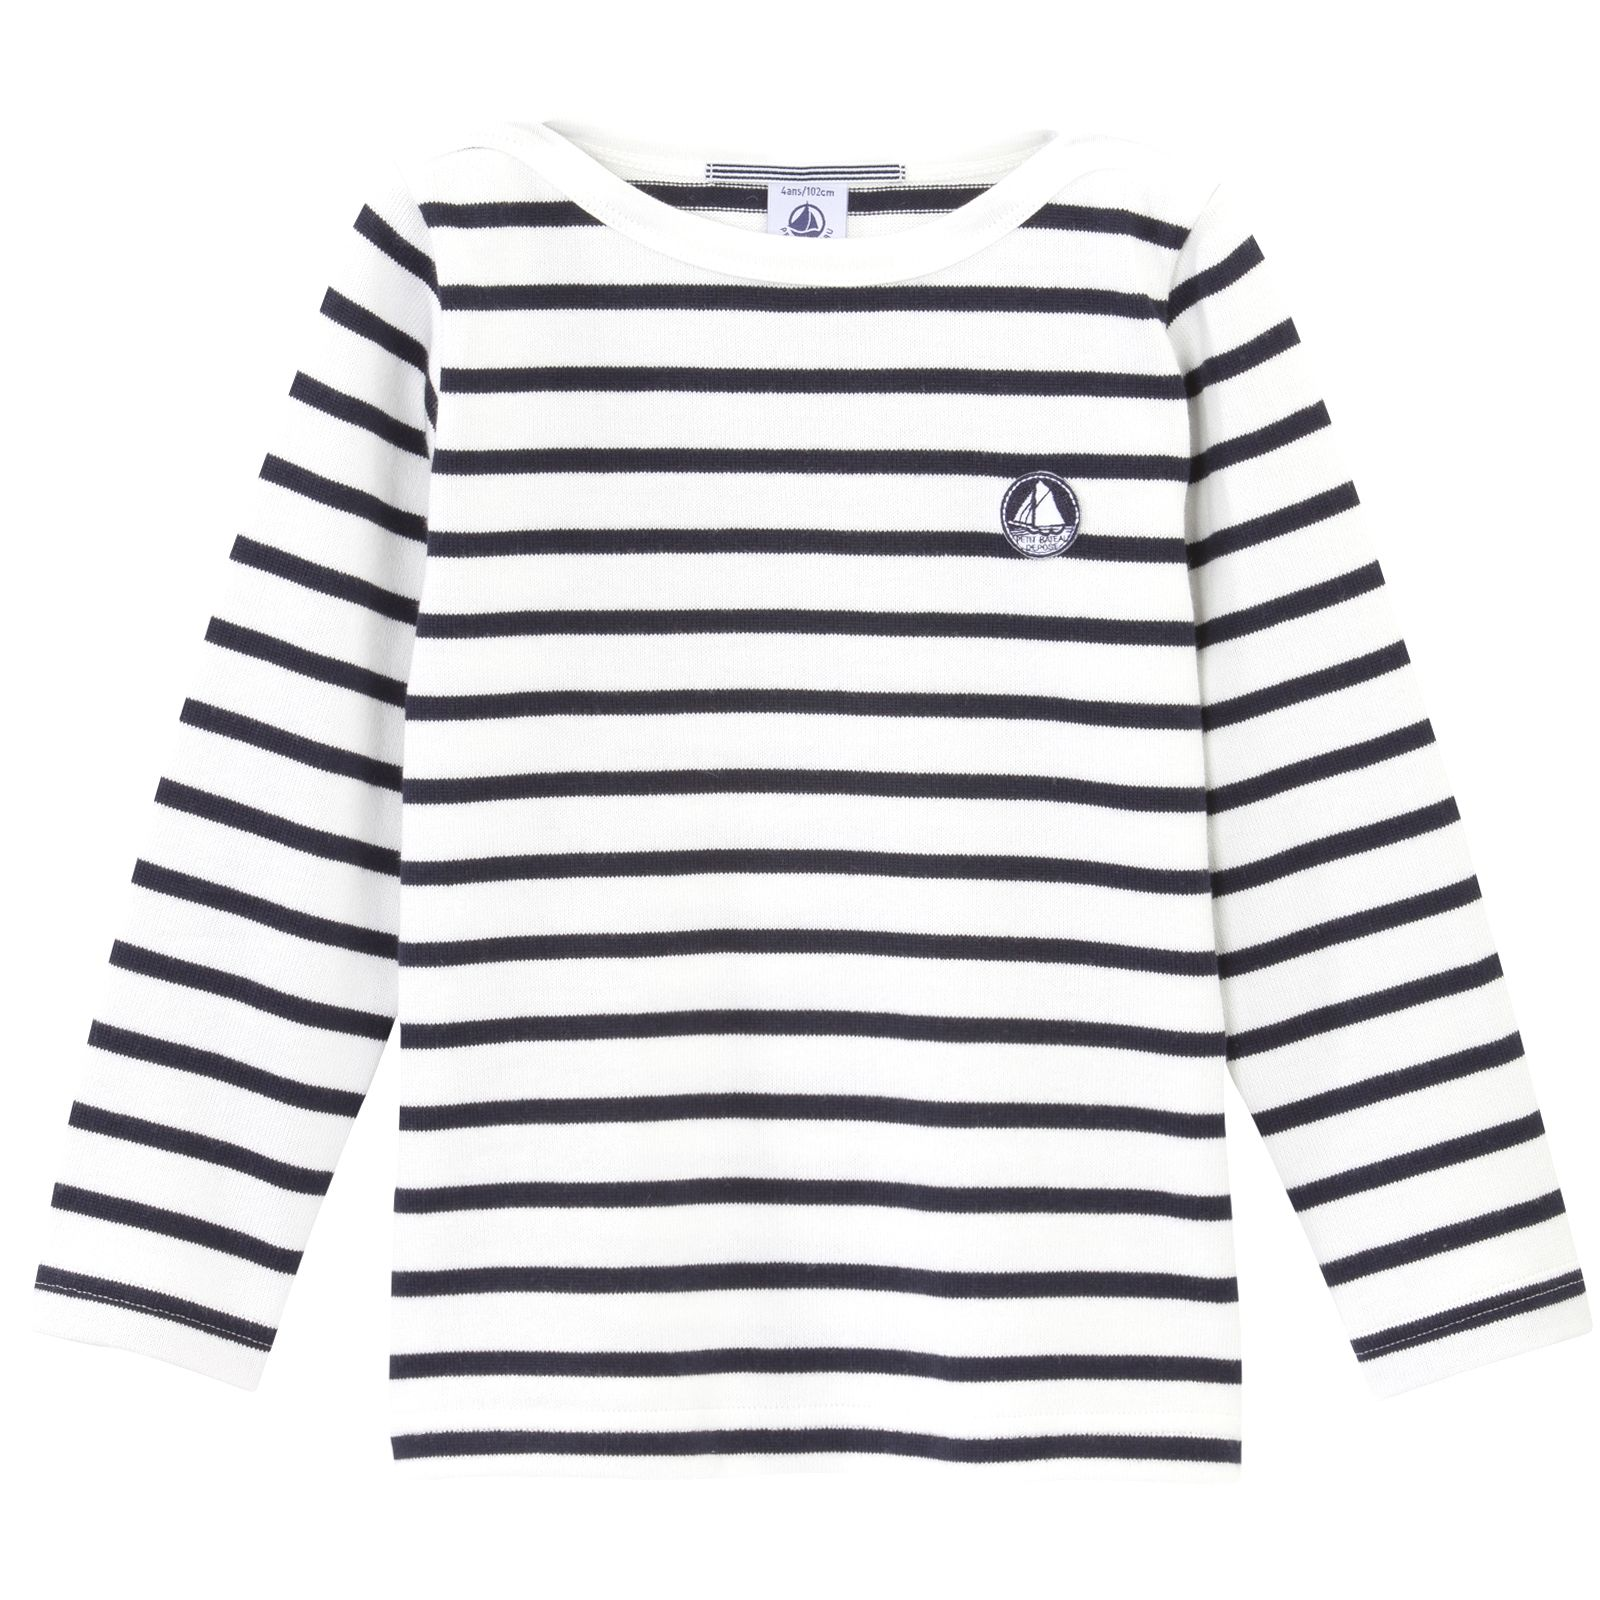 3d83d42442 Striped T-shirt made of heavy cotton. Contrast sailor's neckline. Pin- striped braid inside the collar. Petit Bateau 1920 badge on the chest.